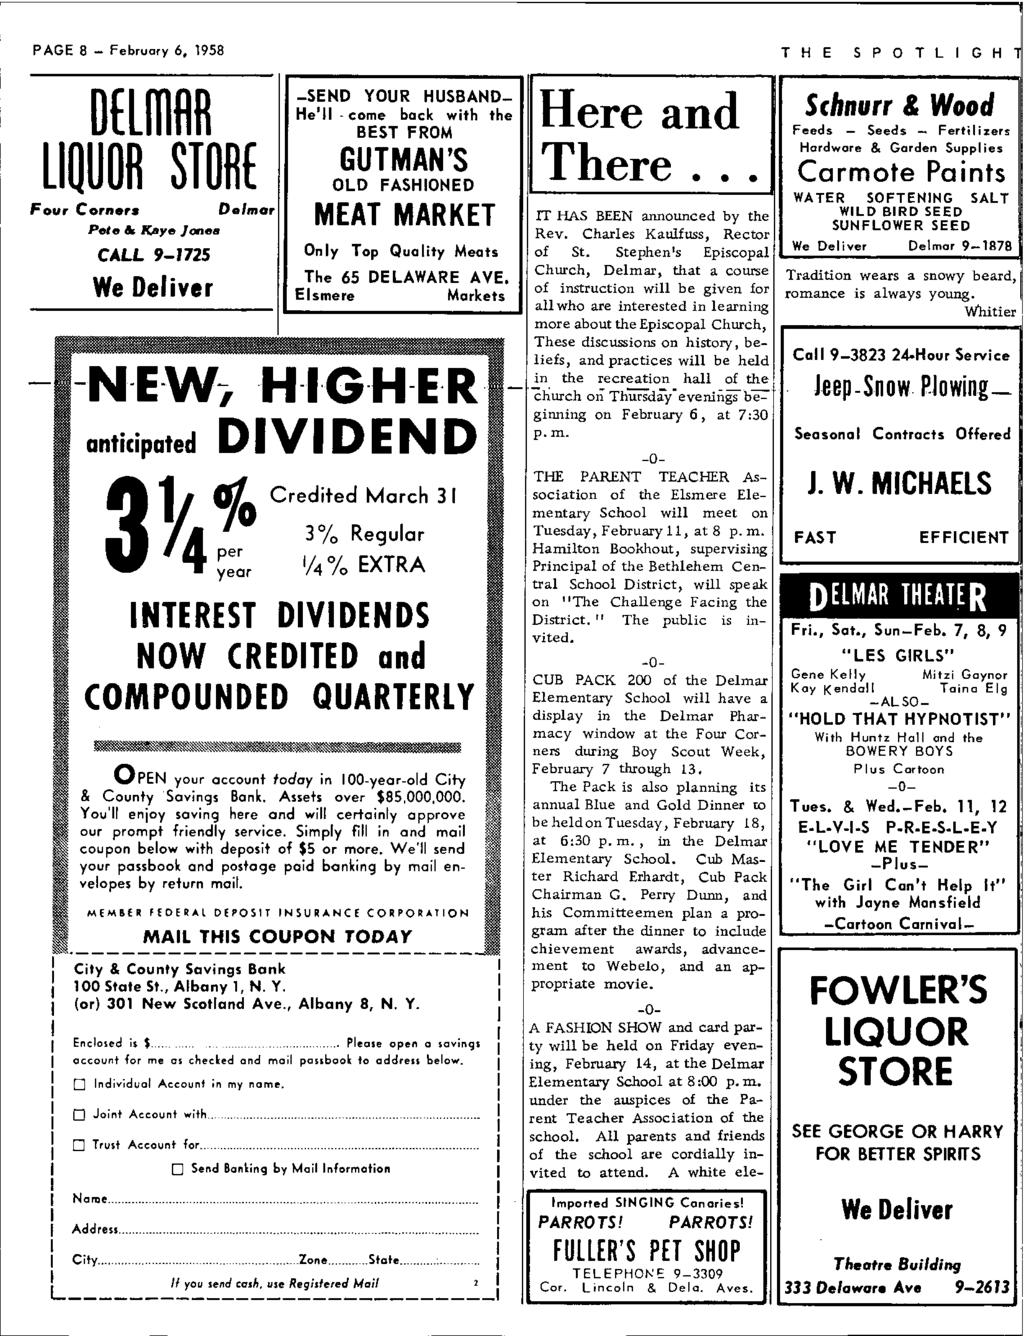 PAGE 8 - February 6, 1958 DflffiHR LIQUOR STOHf Four Corners Pete & K!